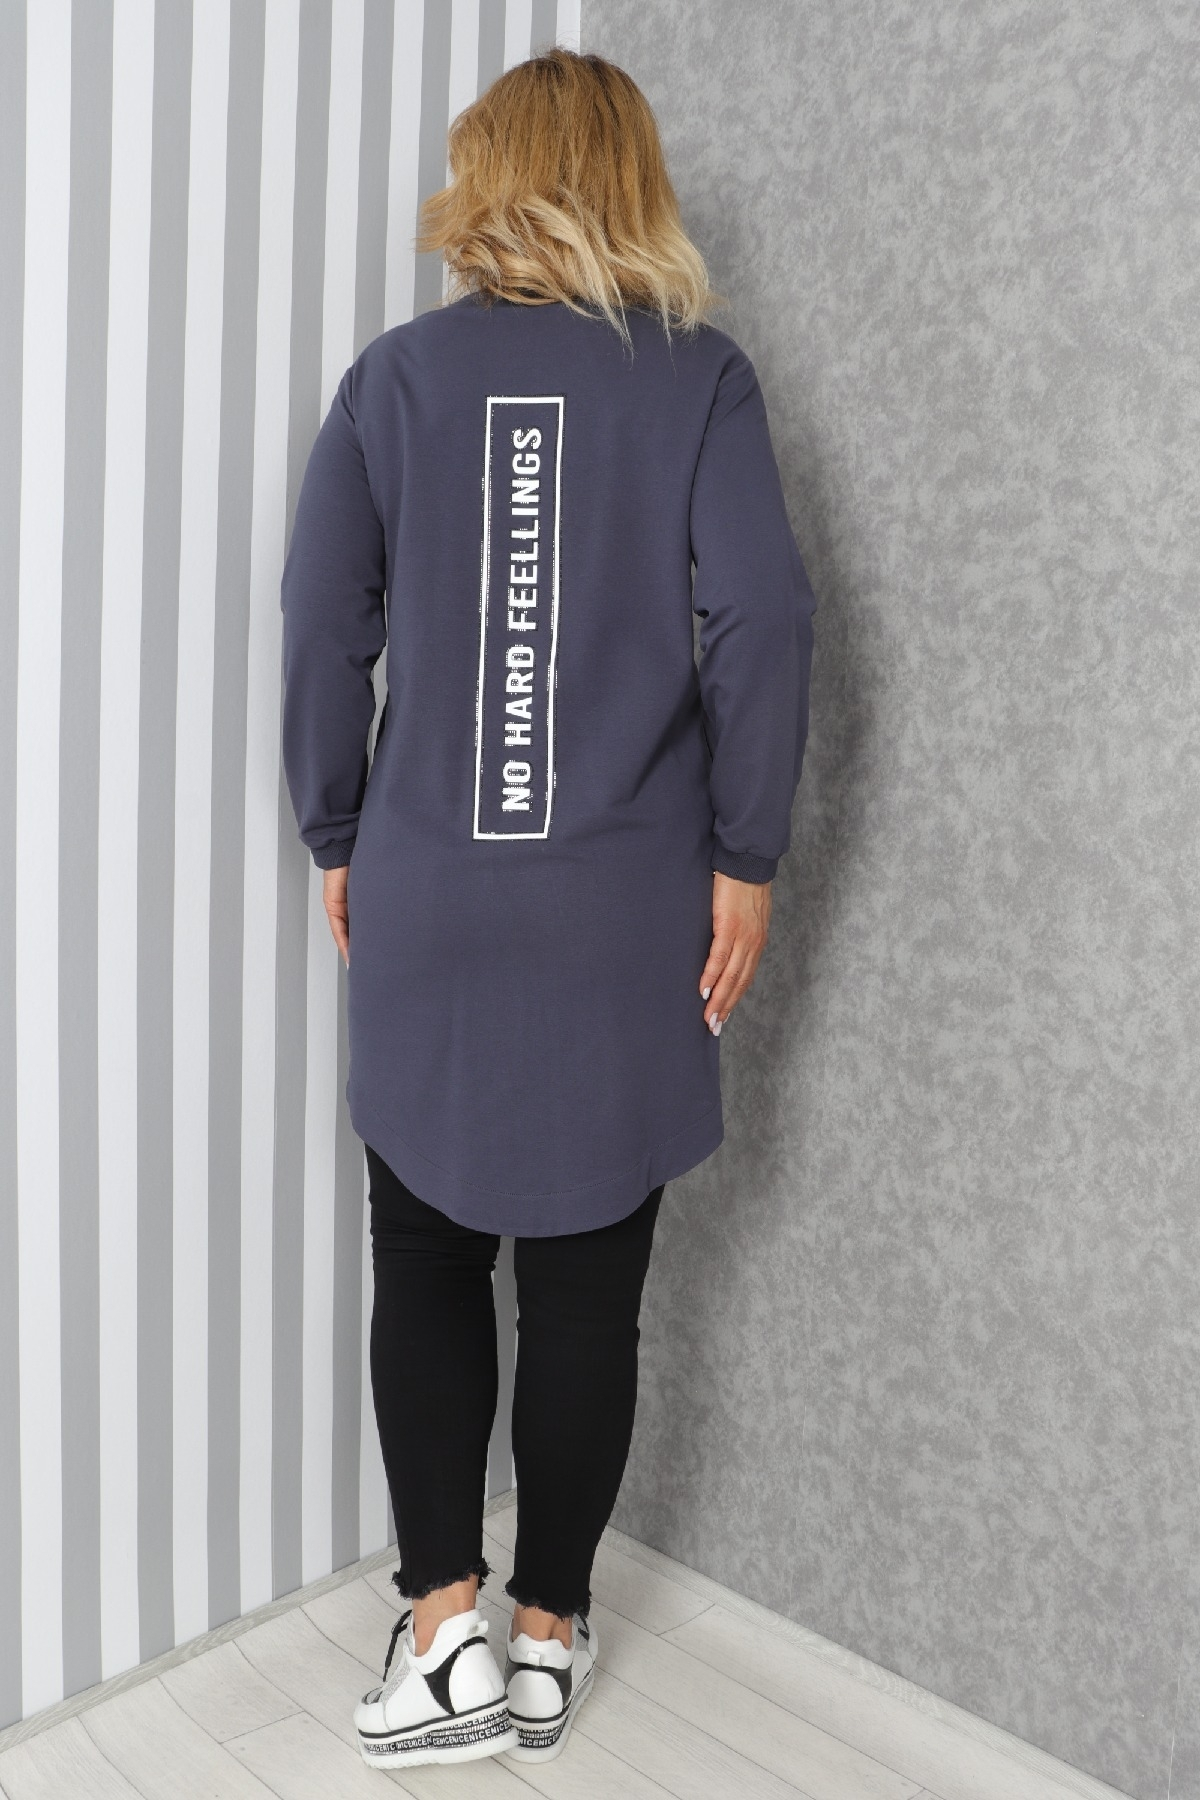 Button tunic top with front letter-print and front pocket